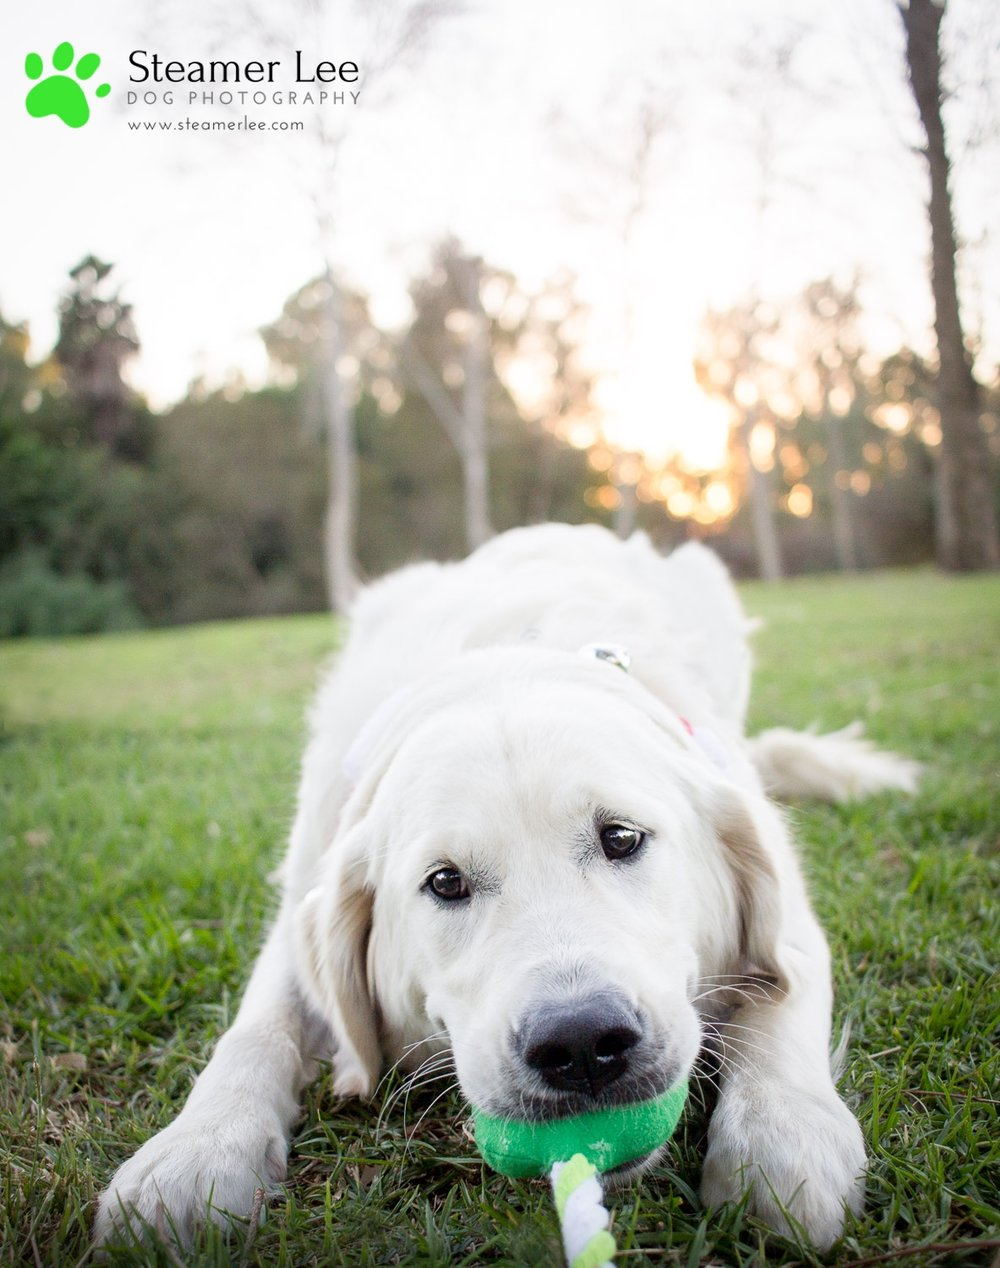 Steamer Lee Dog Photography - Ava White Golden Retriever - 9